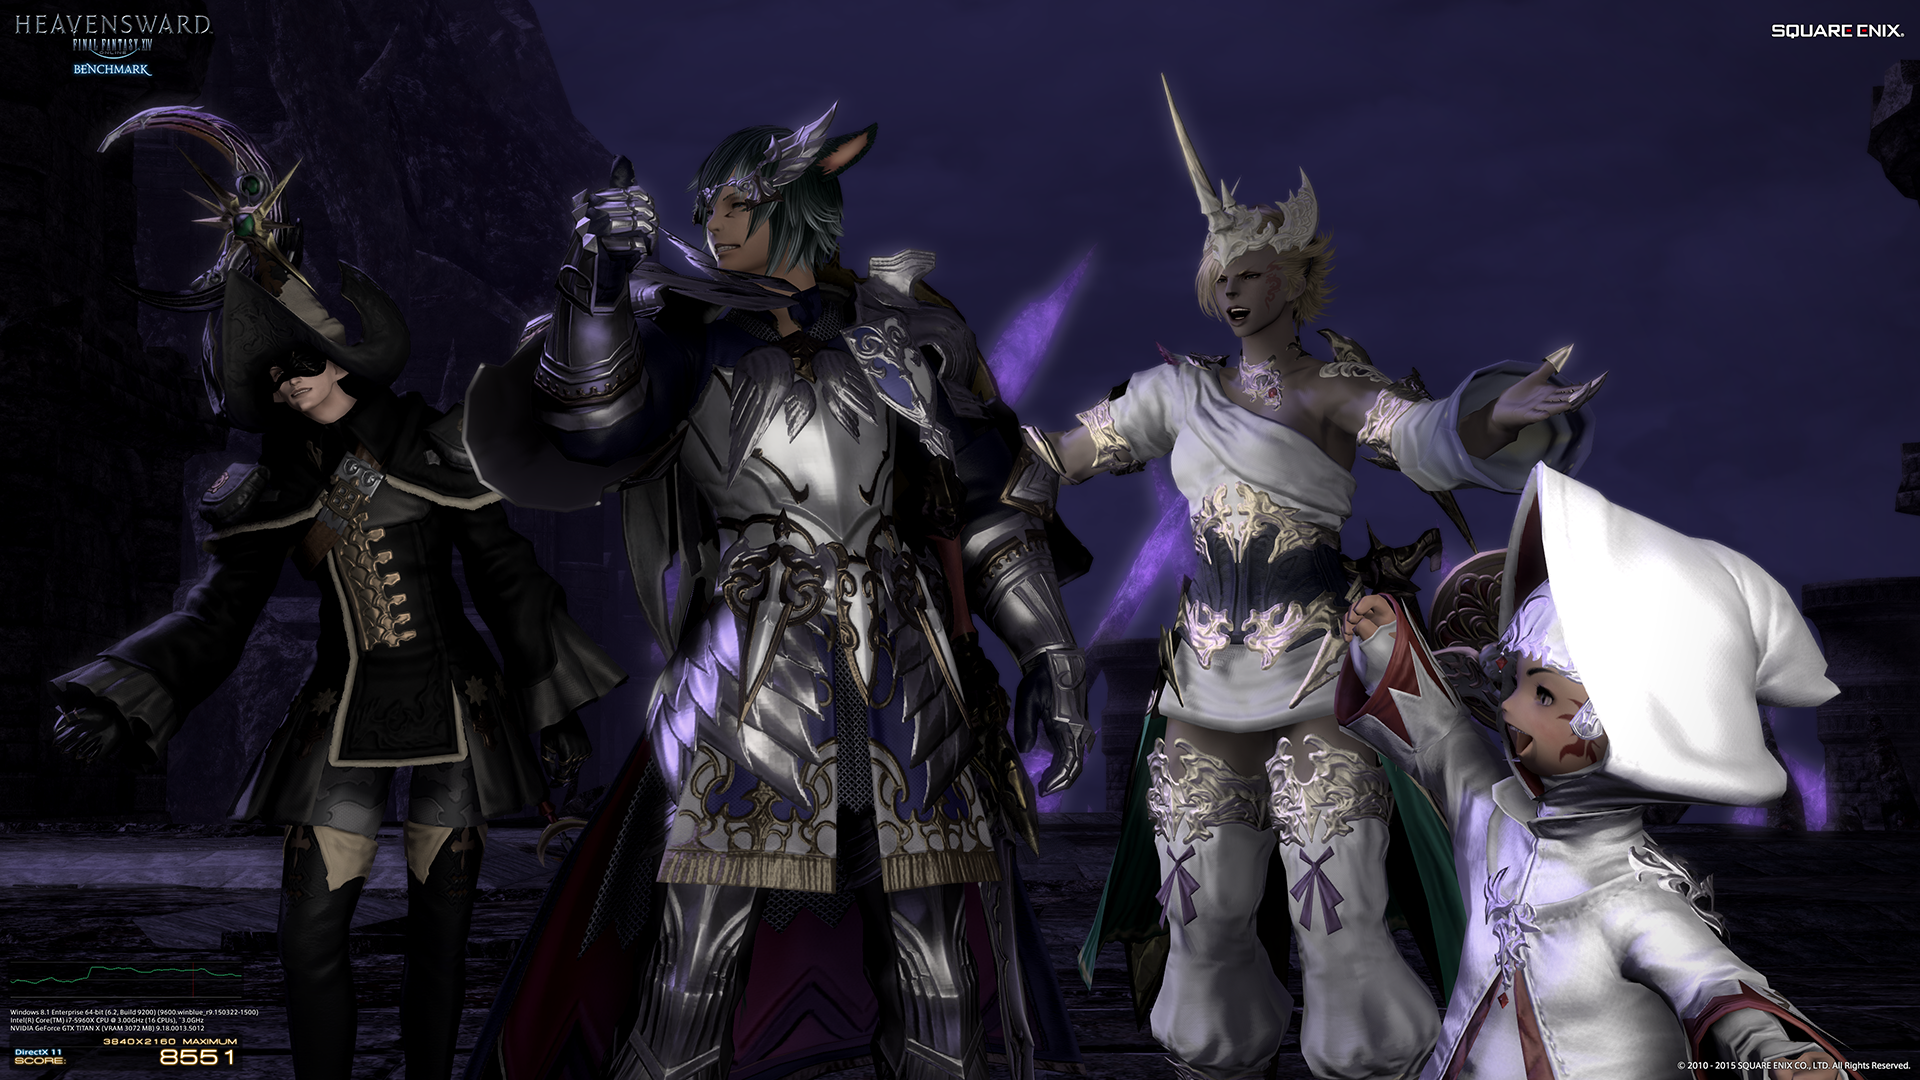 Download final fantasy xiv heavensward s benchmark to test your